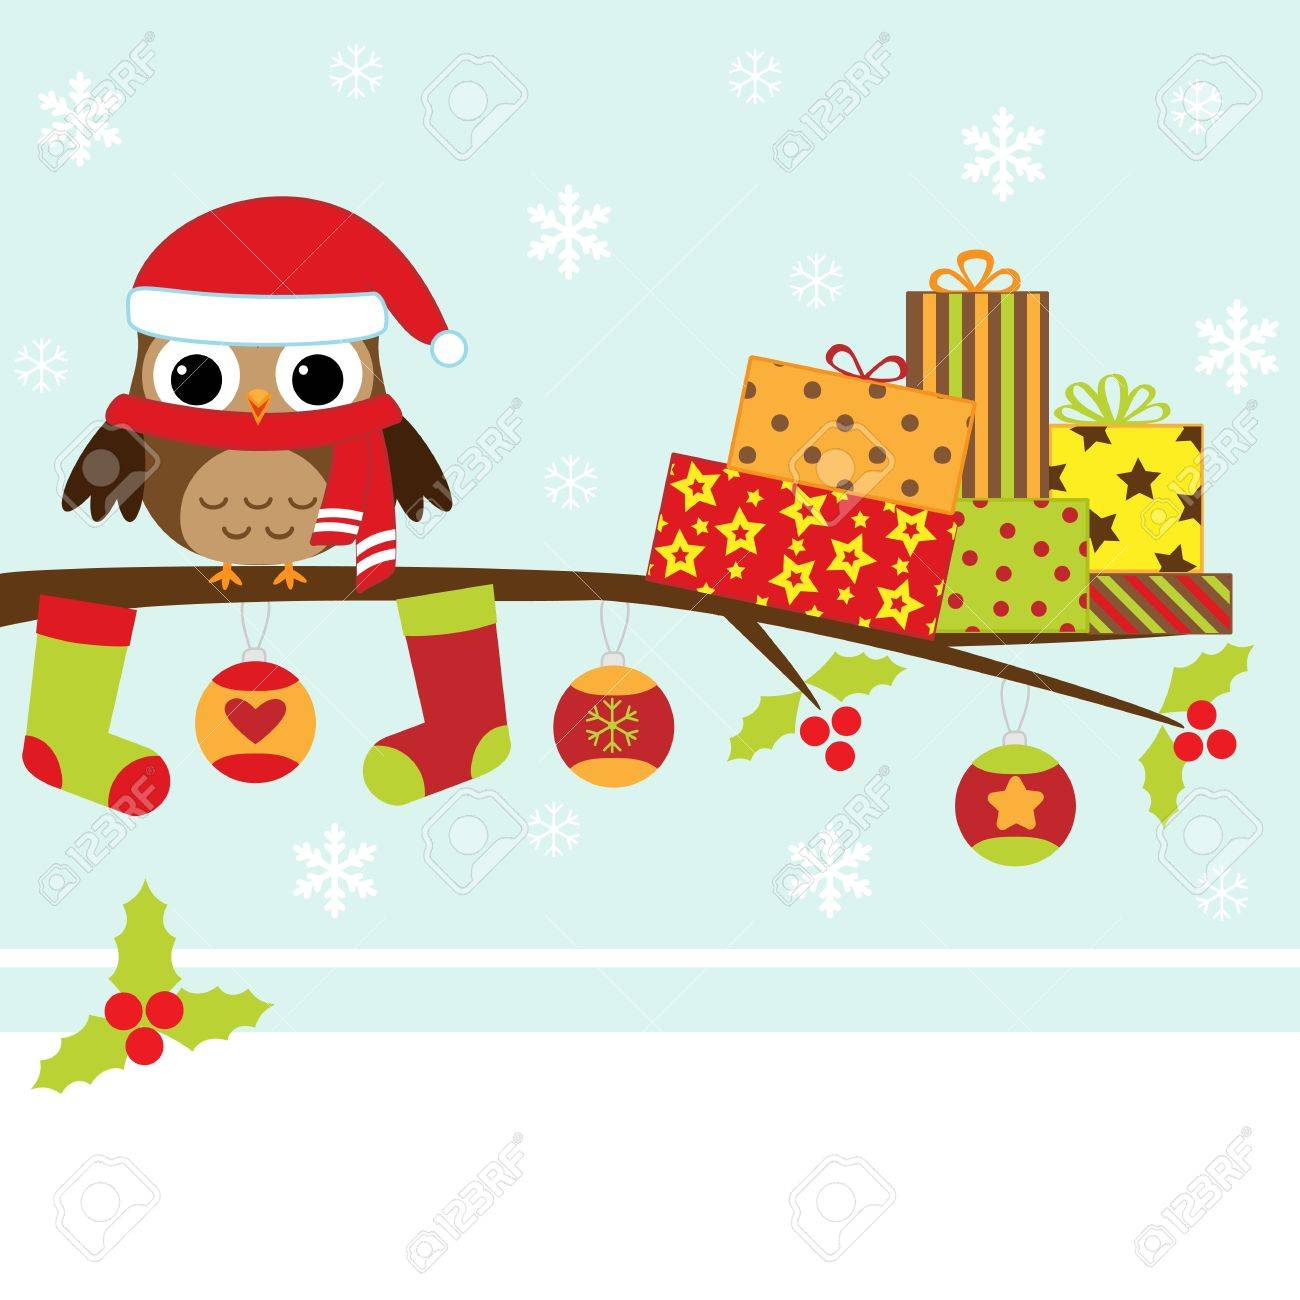 Christmas card with cartoon owl Stock Vector - 11597395